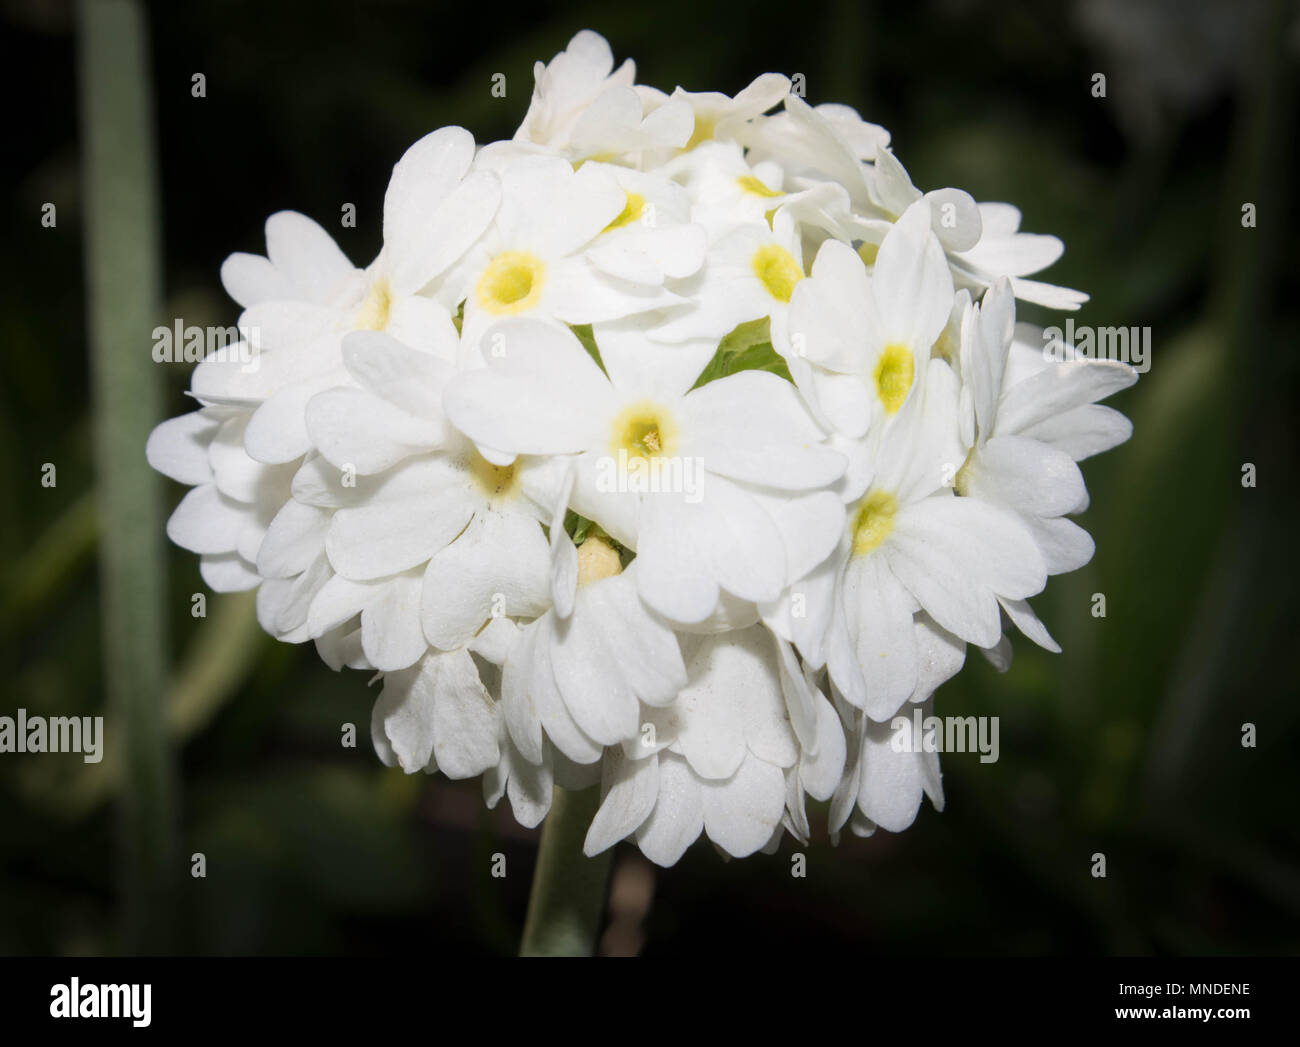 Small white flowers with a yellow middle grow in a ball stock photo small white flowers with a yellow middle grow in a ball mightylinksfo